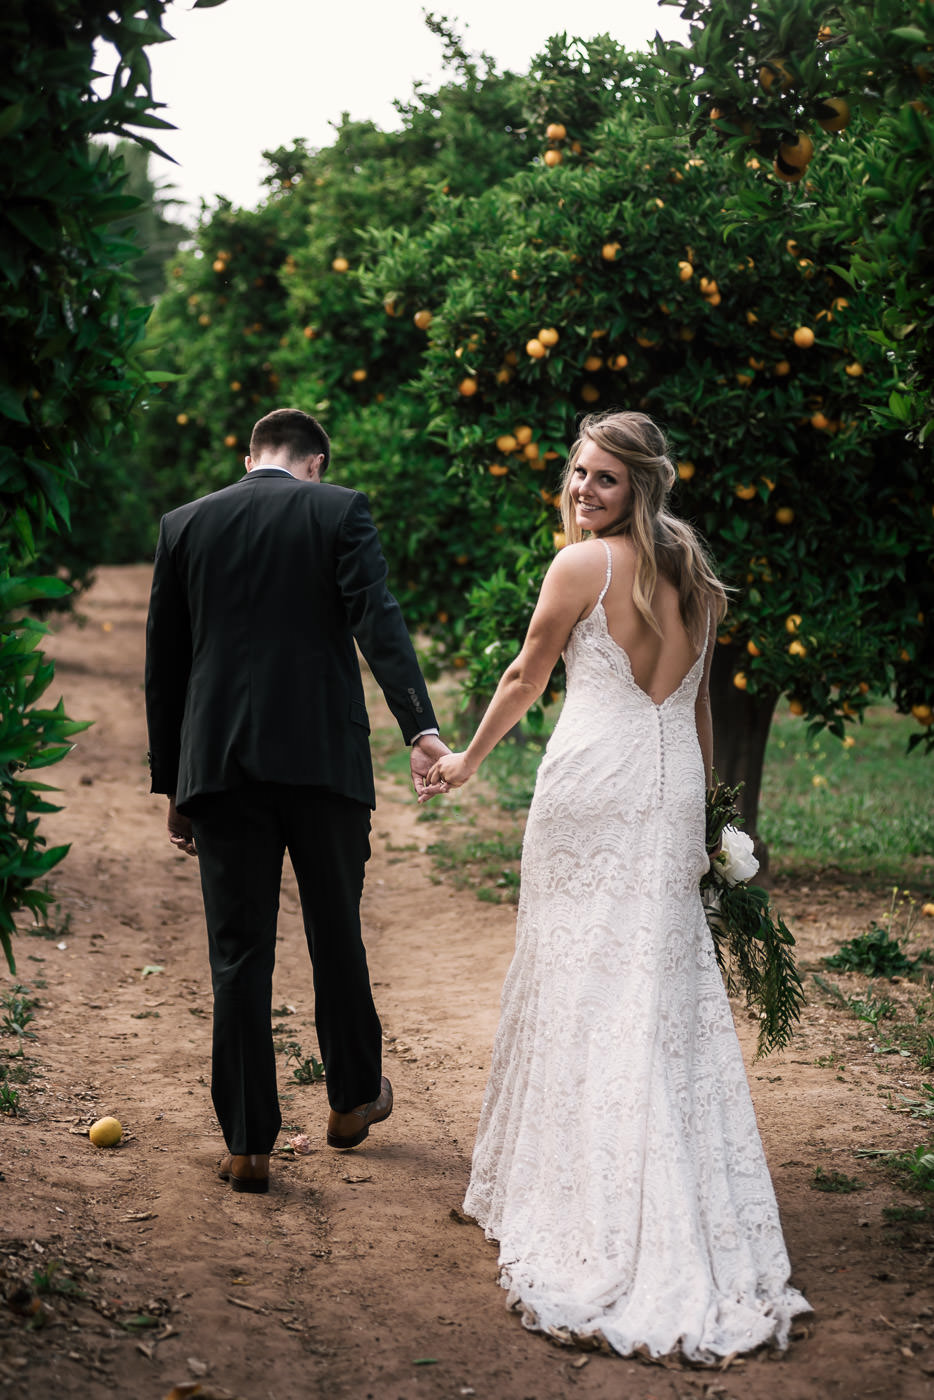 Groom leads his bride on a romantic walk through the orange orchards of Temecula California at their June wedding.